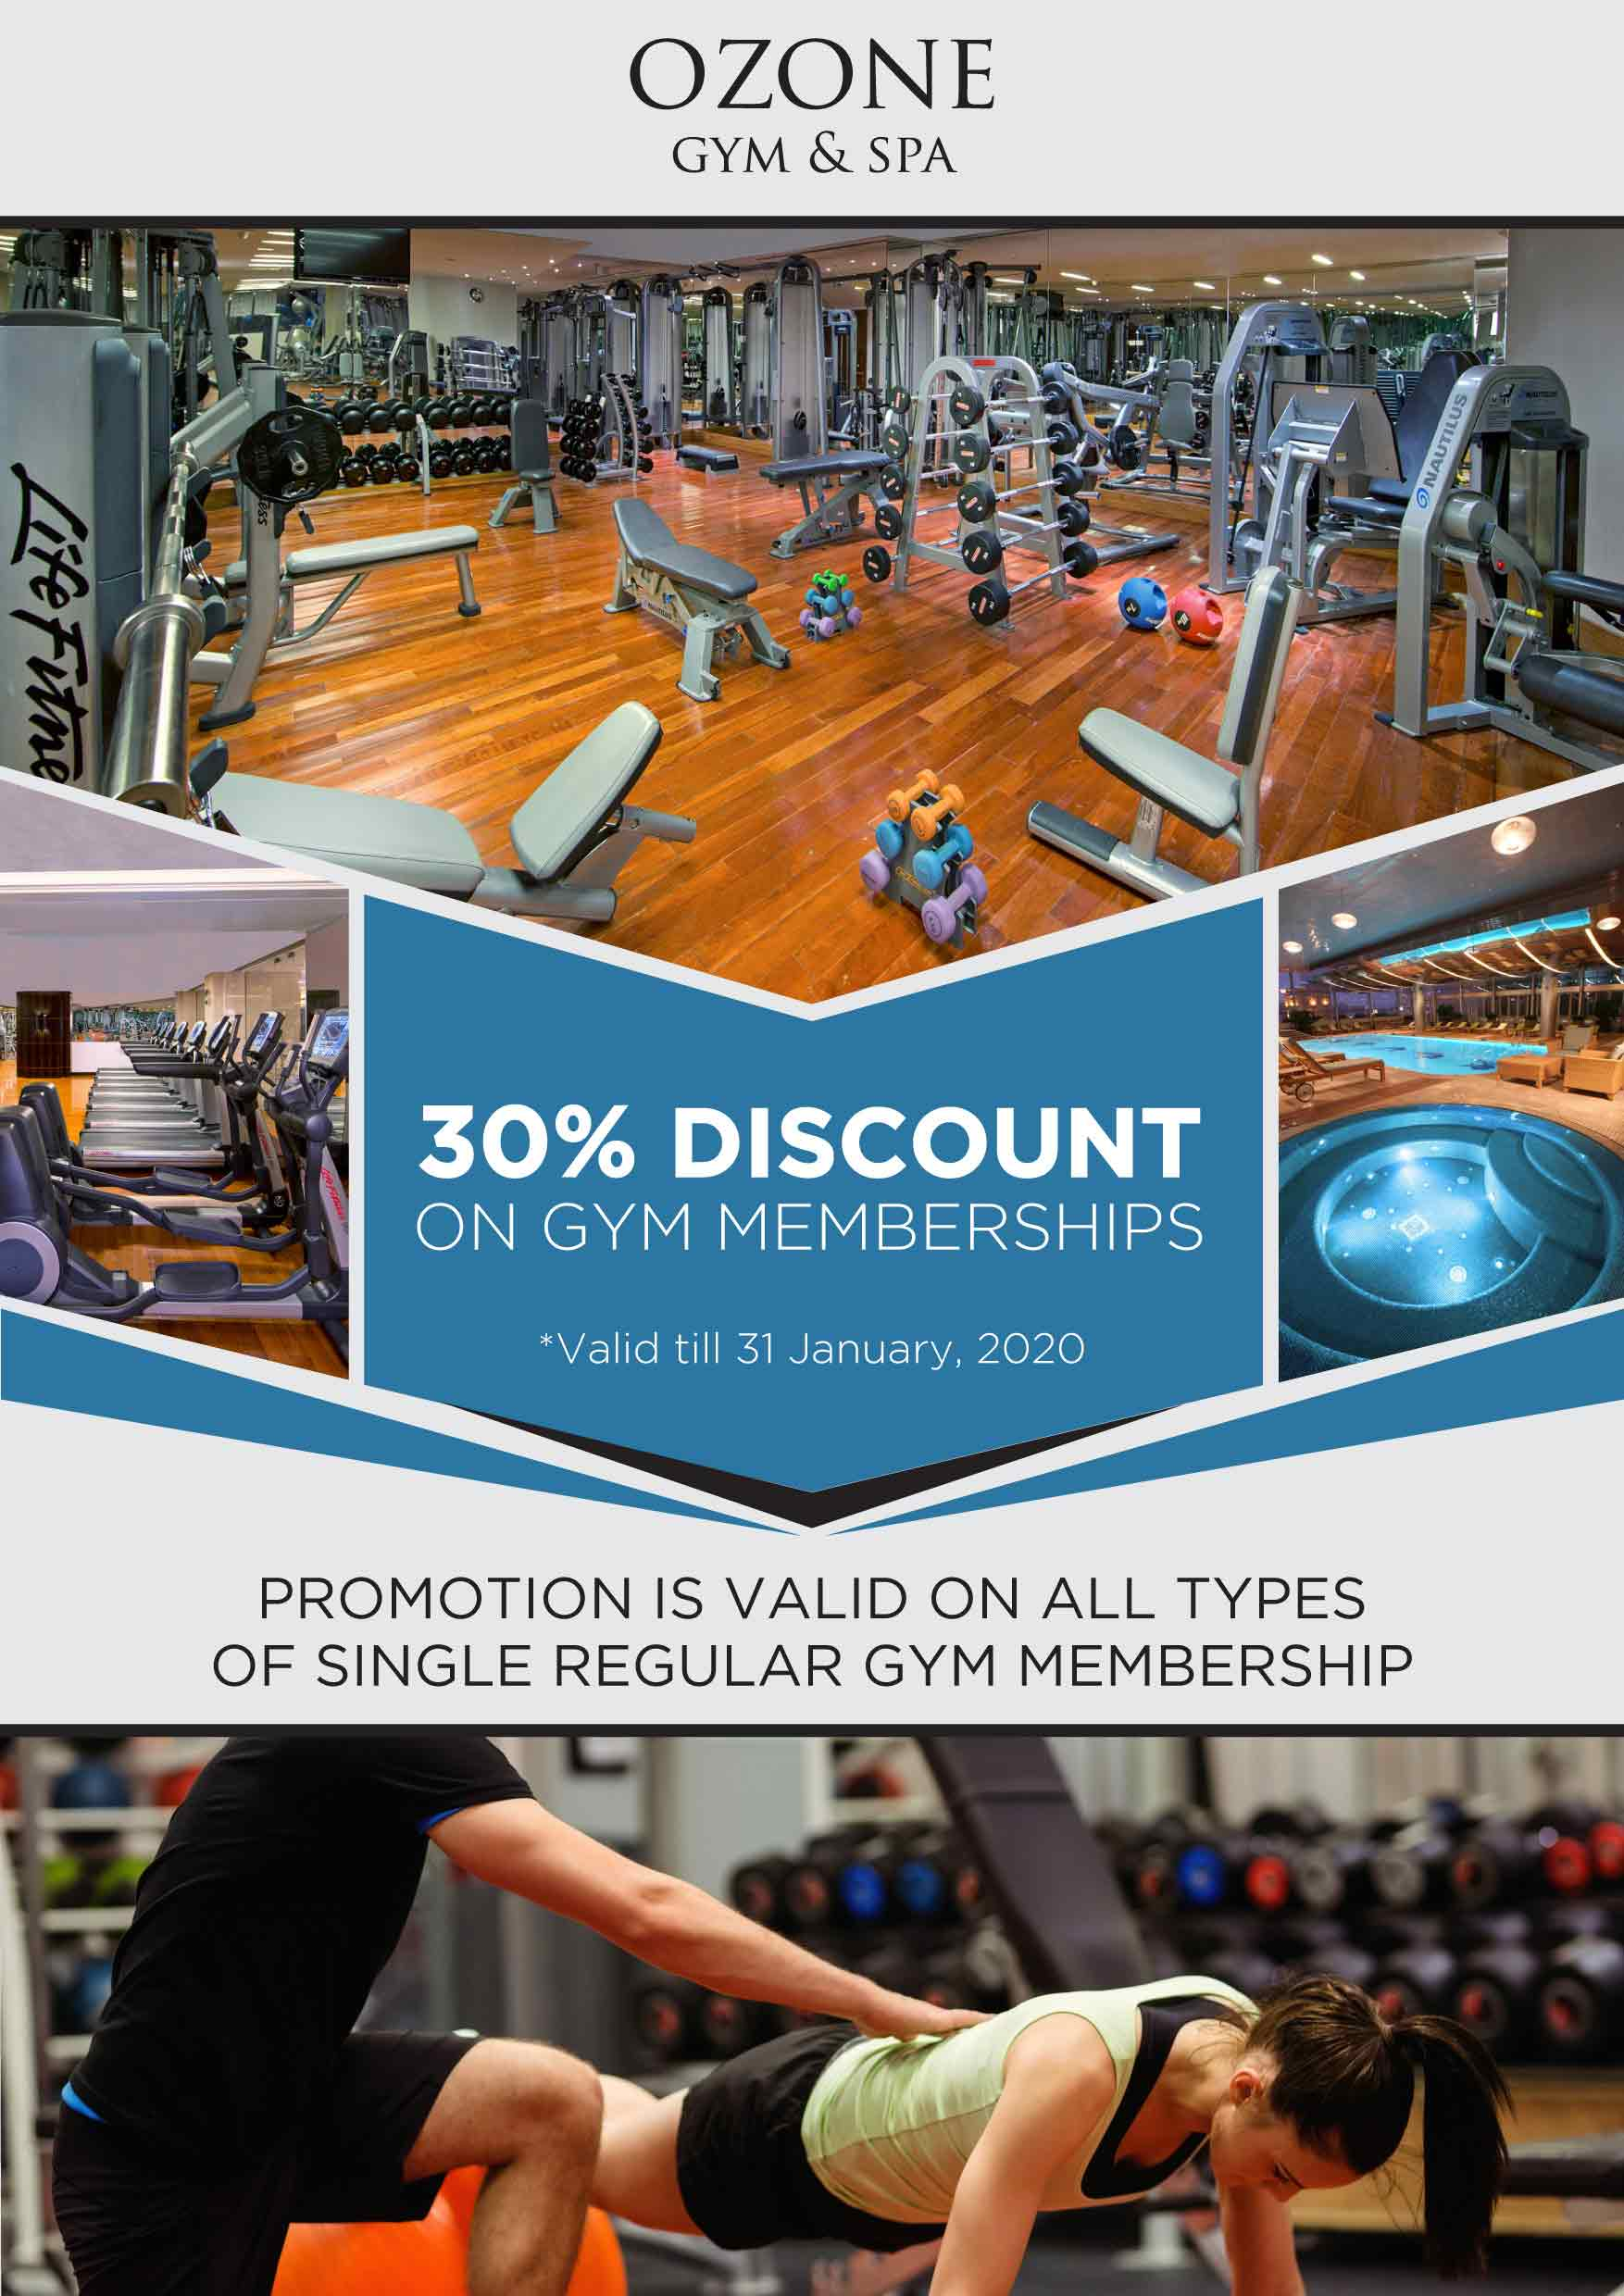 La Cigale Hotel - 30% Gym Membership Offer